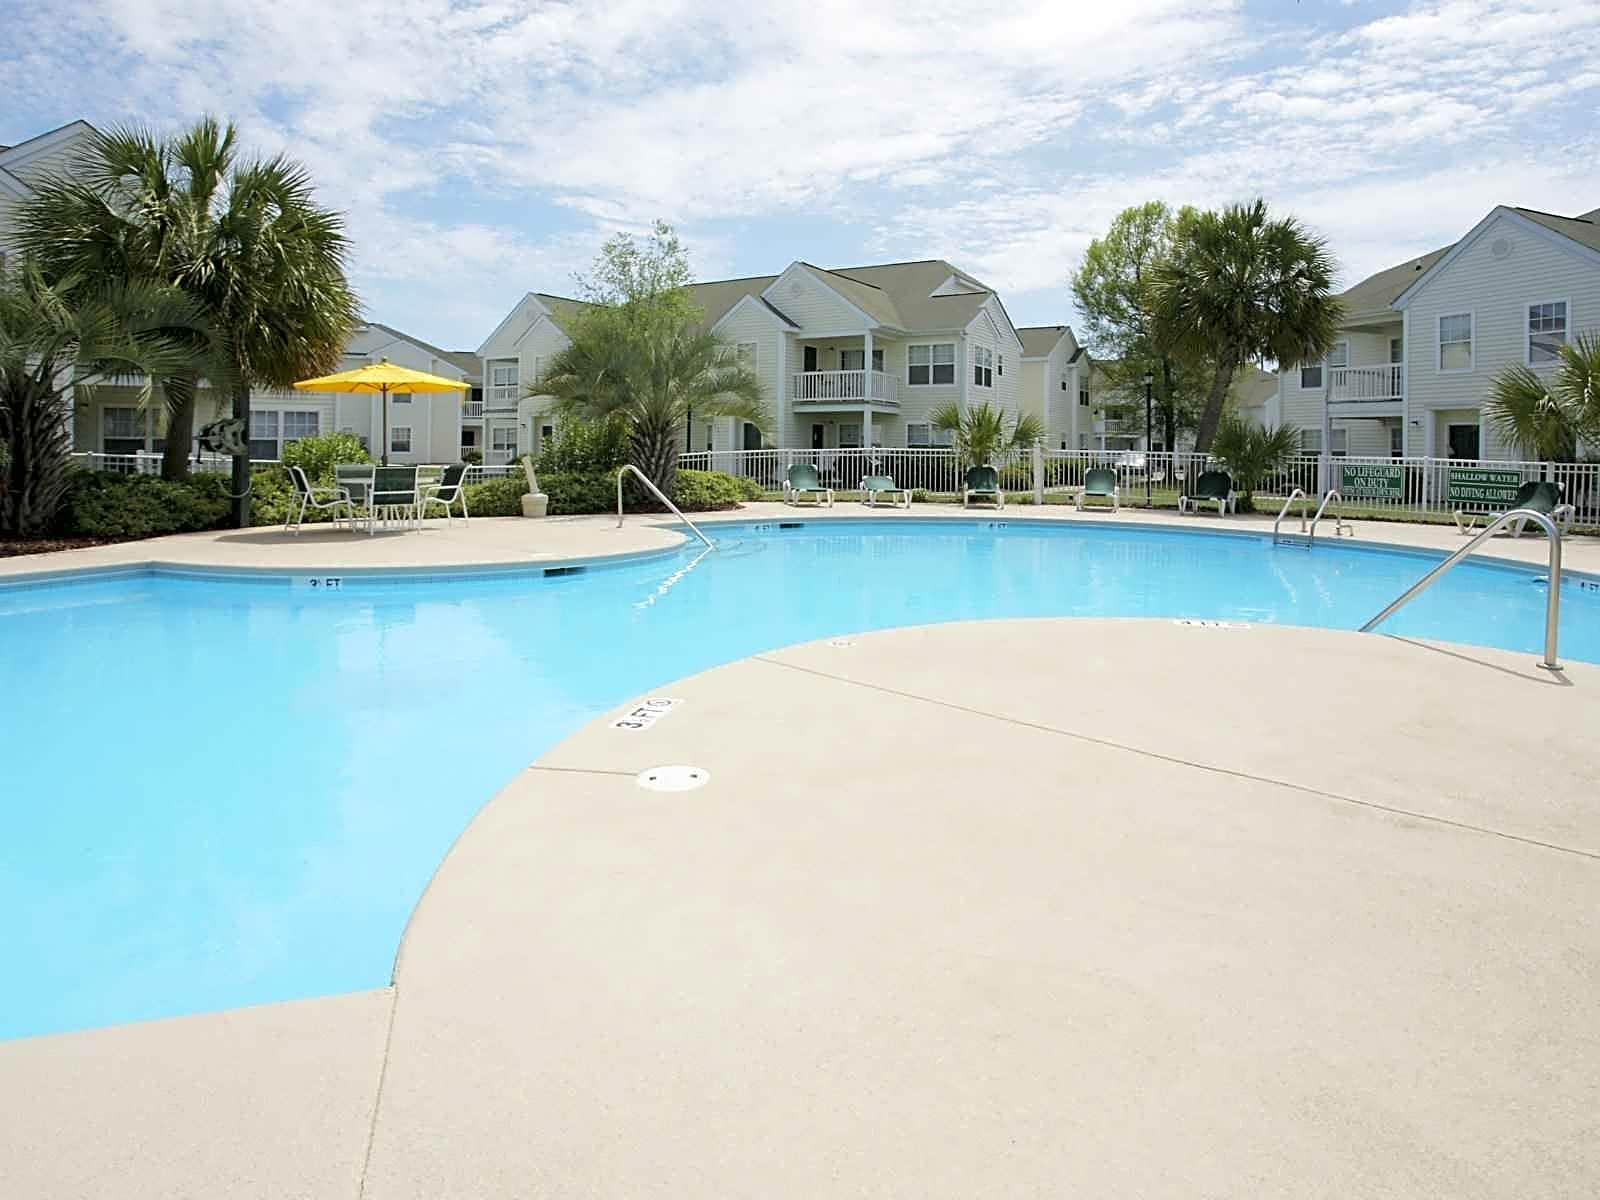 Photo: Myrtle Beach Apartment for Rent - $779.00 / month; 1 Bd & 1 Ba